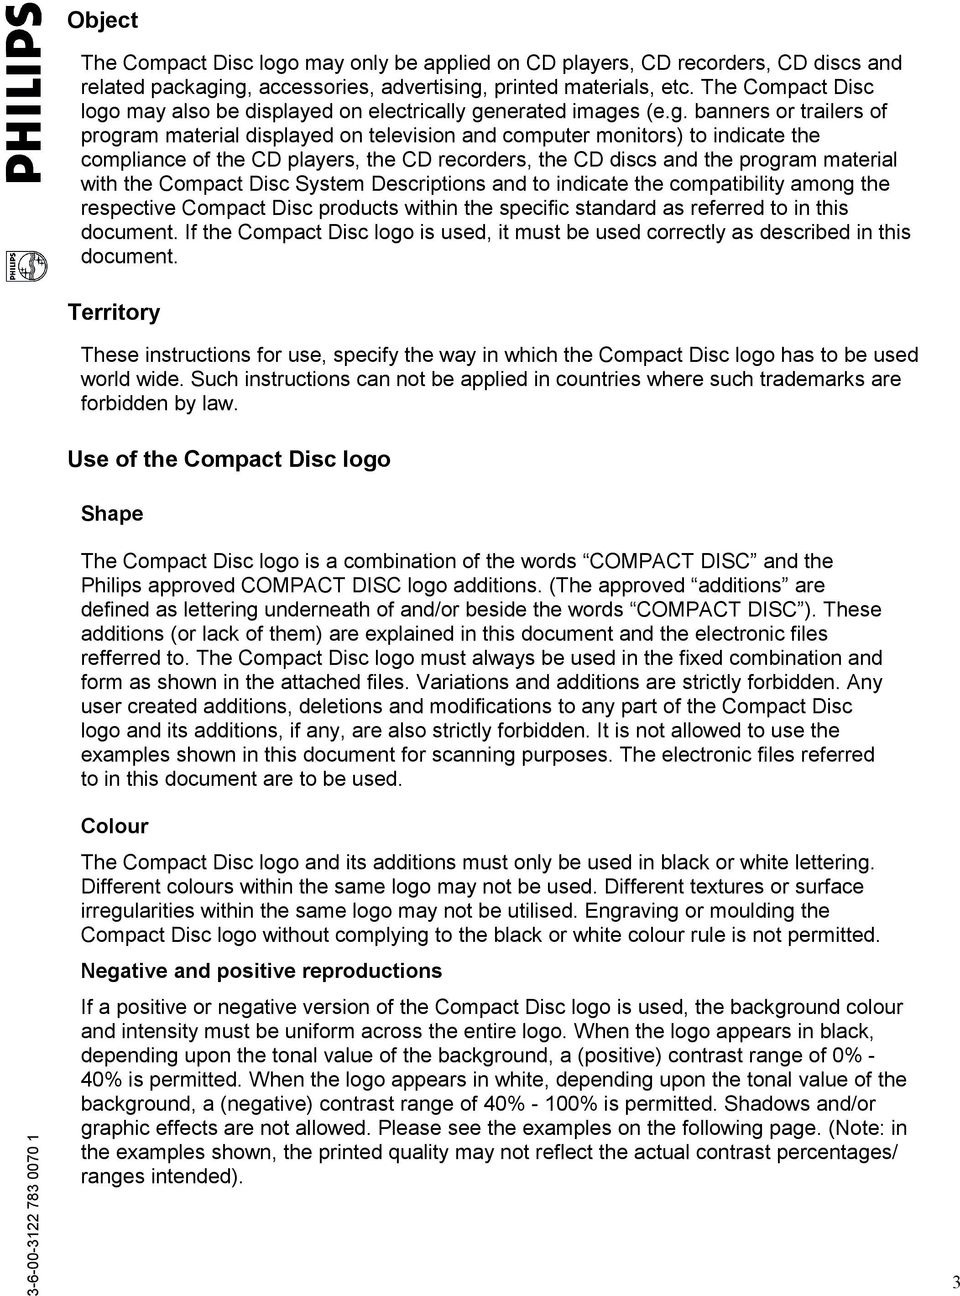 The official Philips Compact Disc (CD) LOGO GUIDE - PDF